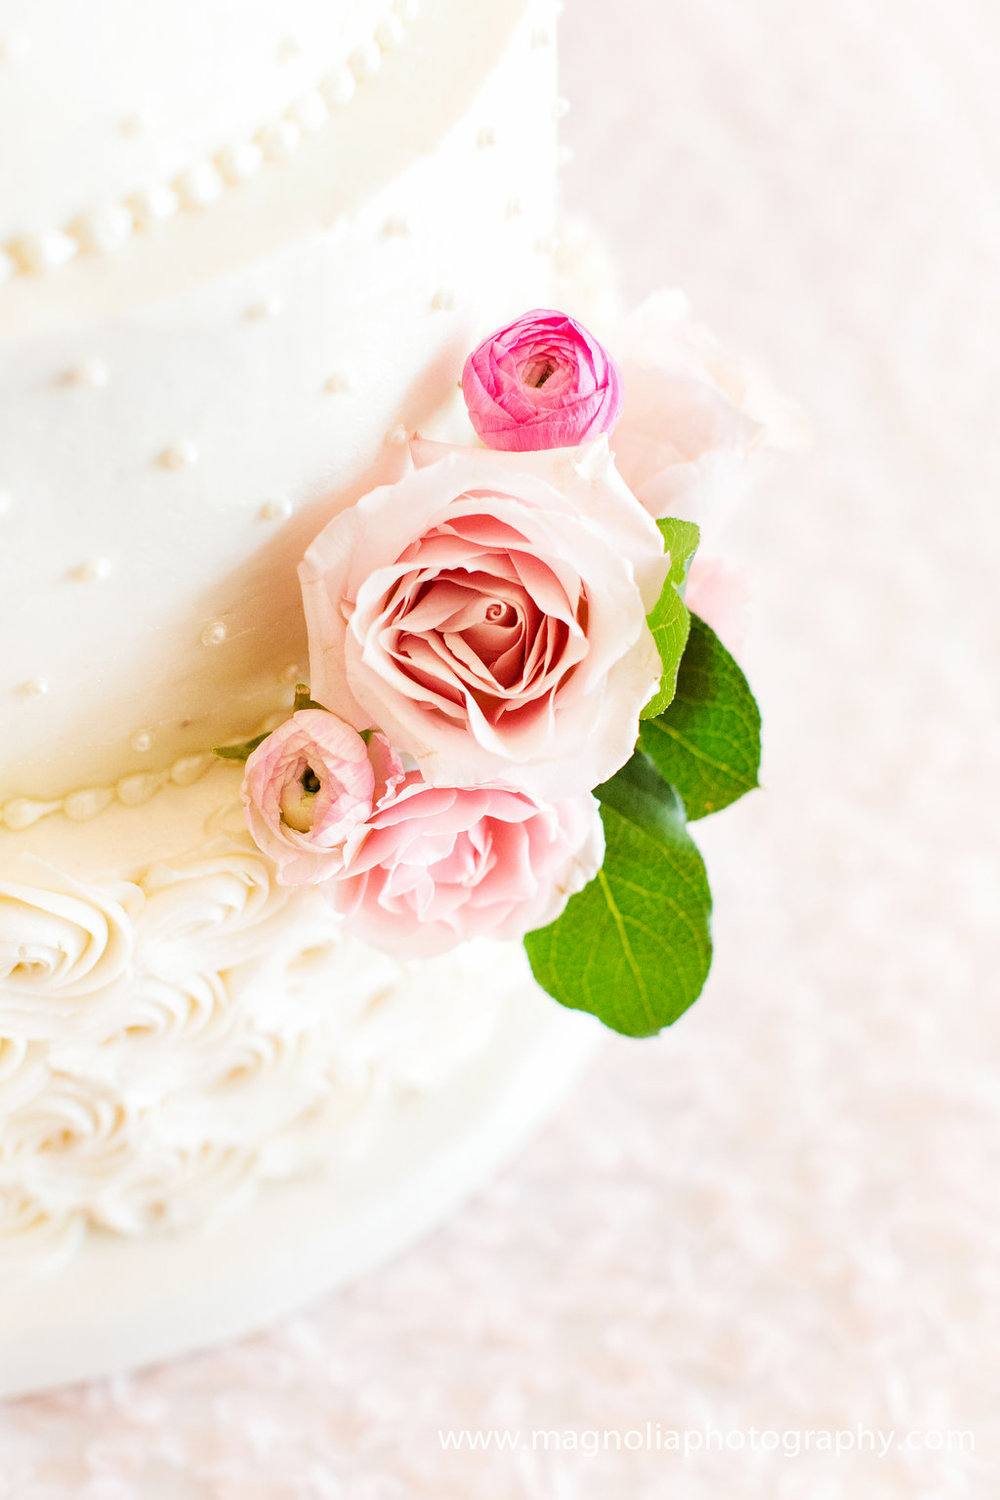 Flower Detail | Edible Art Bakery of Raleigh